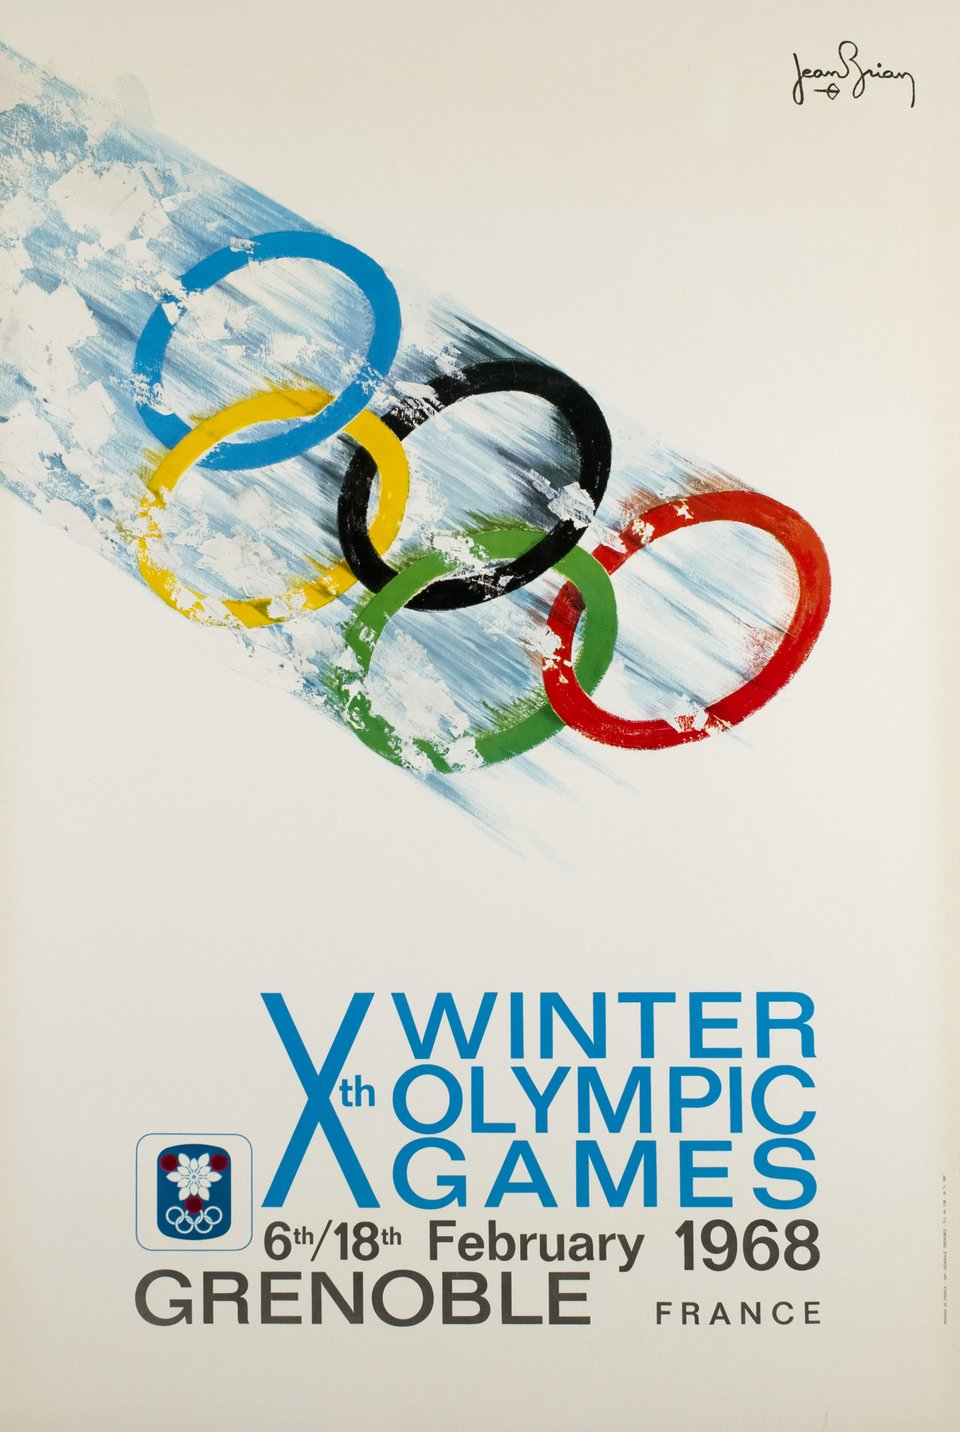 Grenoble, Xth Olympic Winter Games, 1968 – Affiche ancienne – Jean BRIAN – 1968